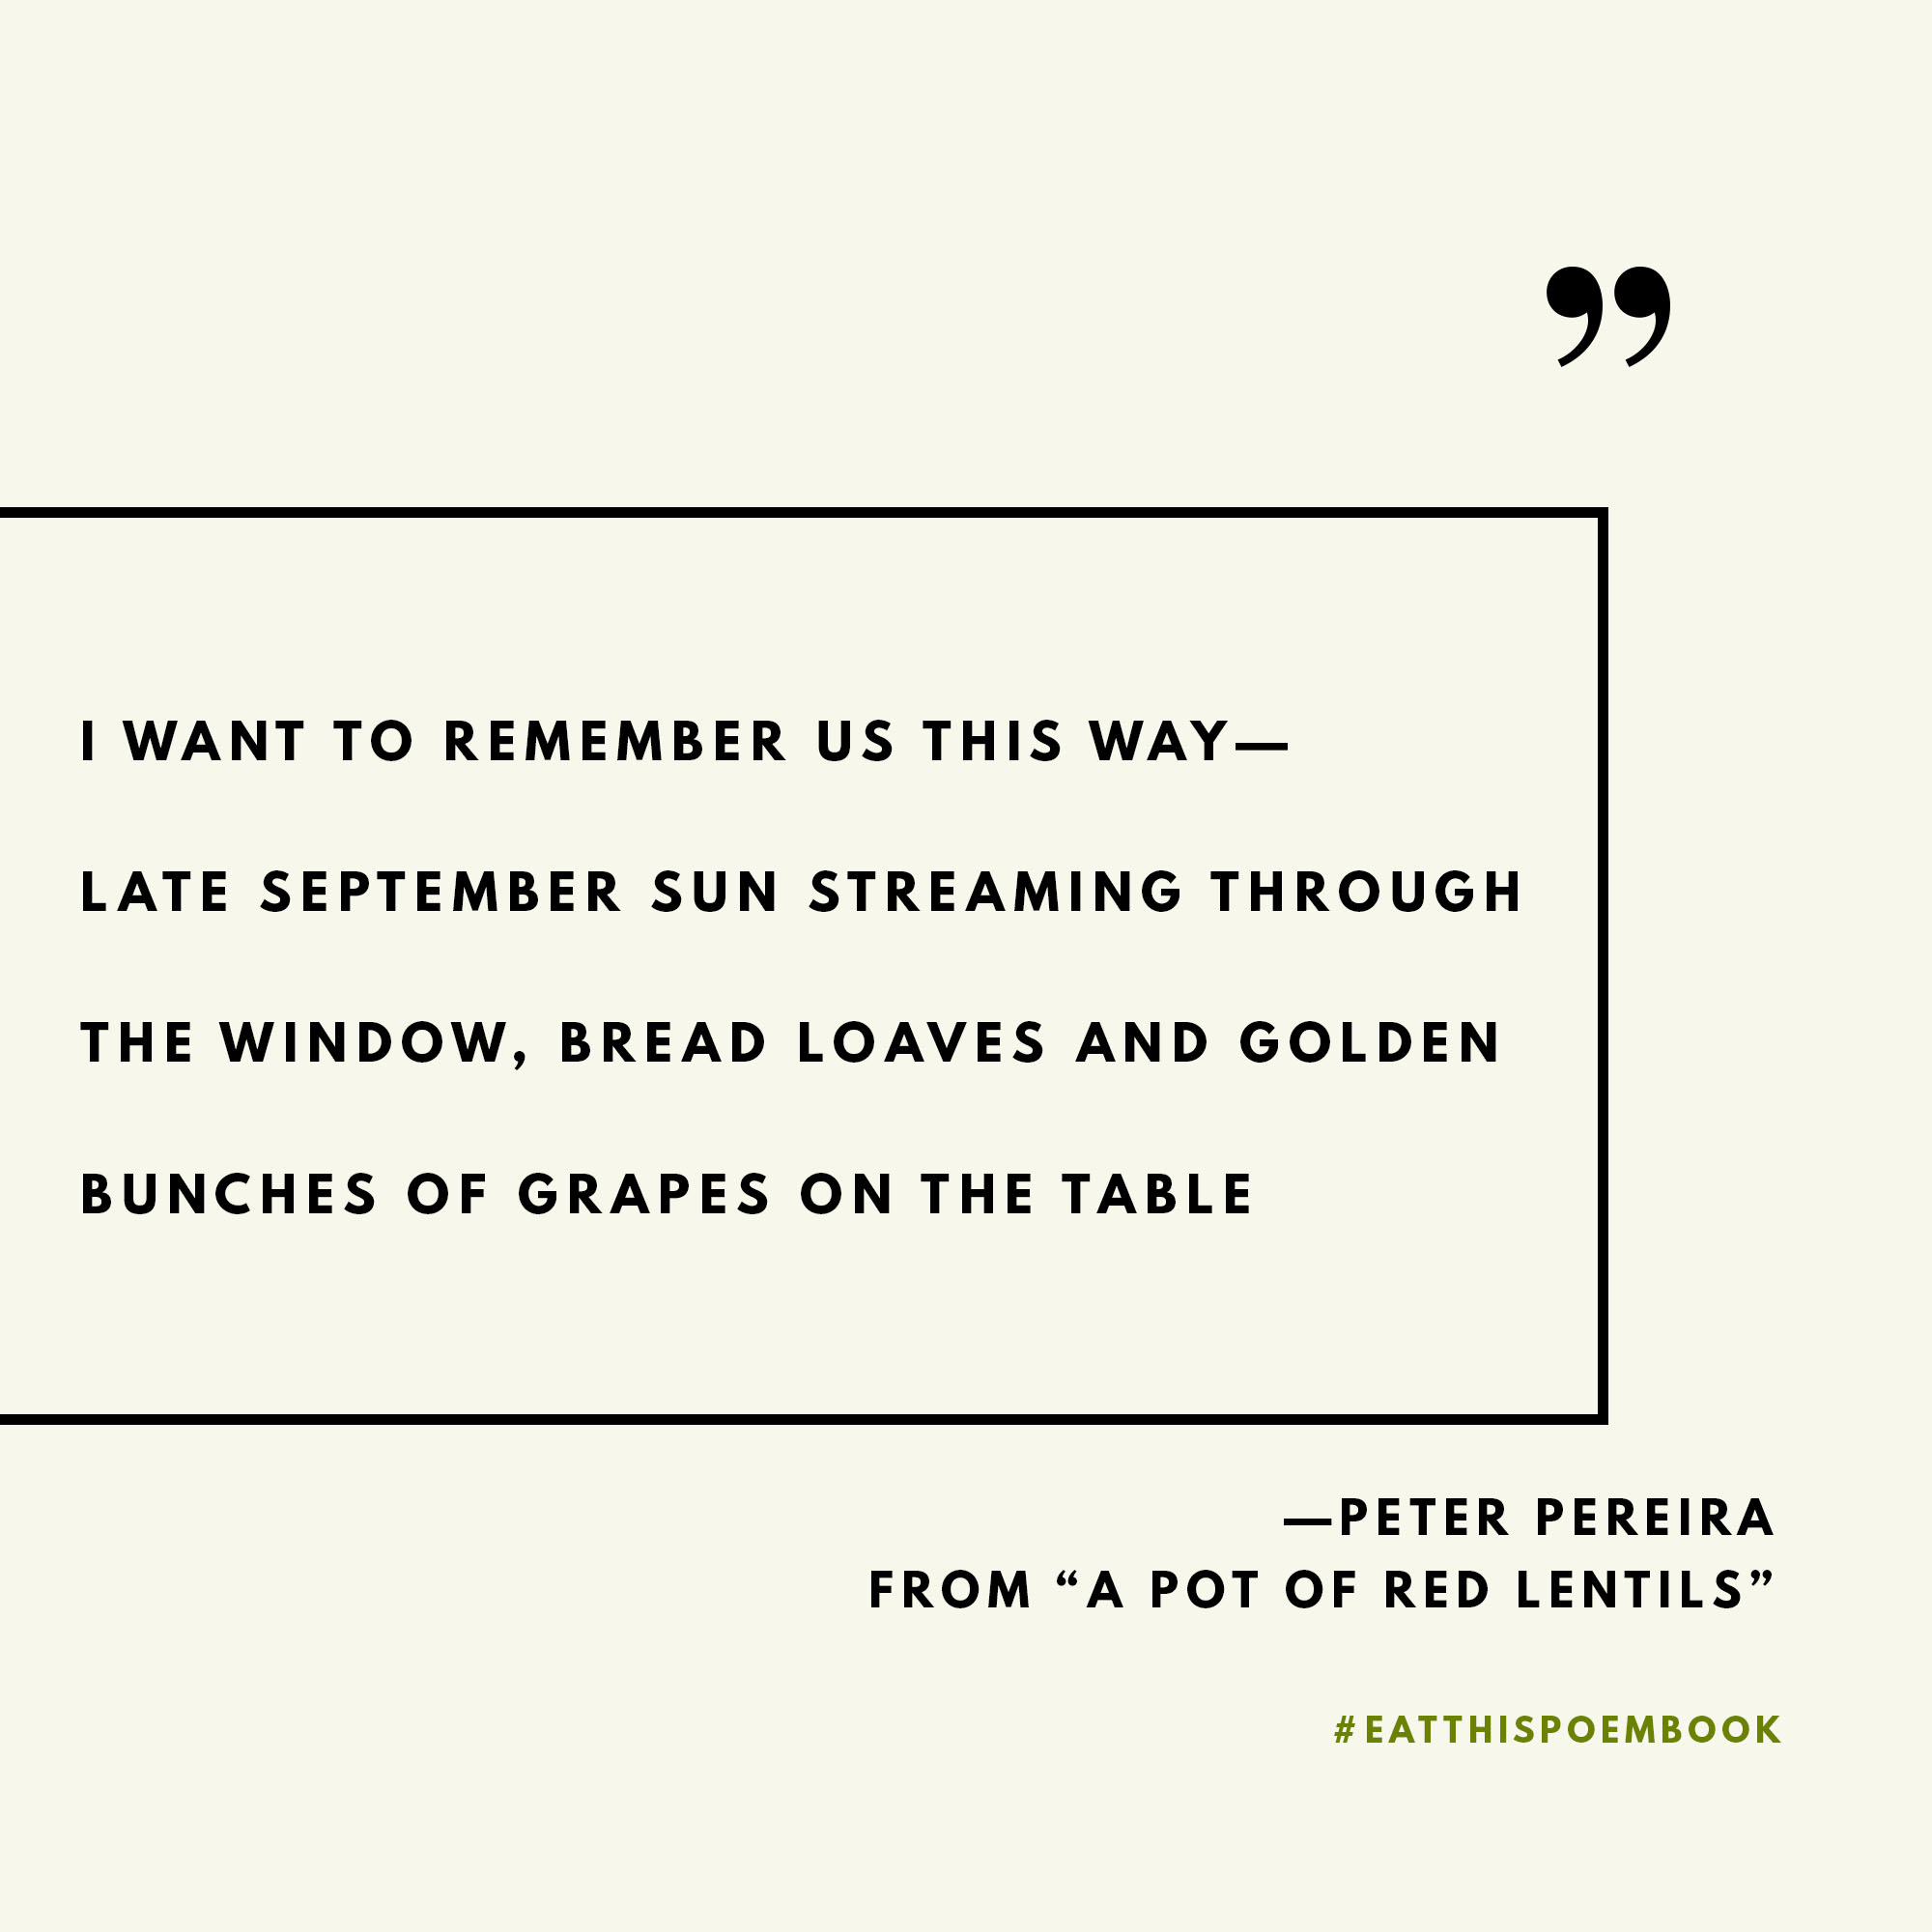 Celebrating National Poetry Month with quotes from the Eat This Poem Cookbook